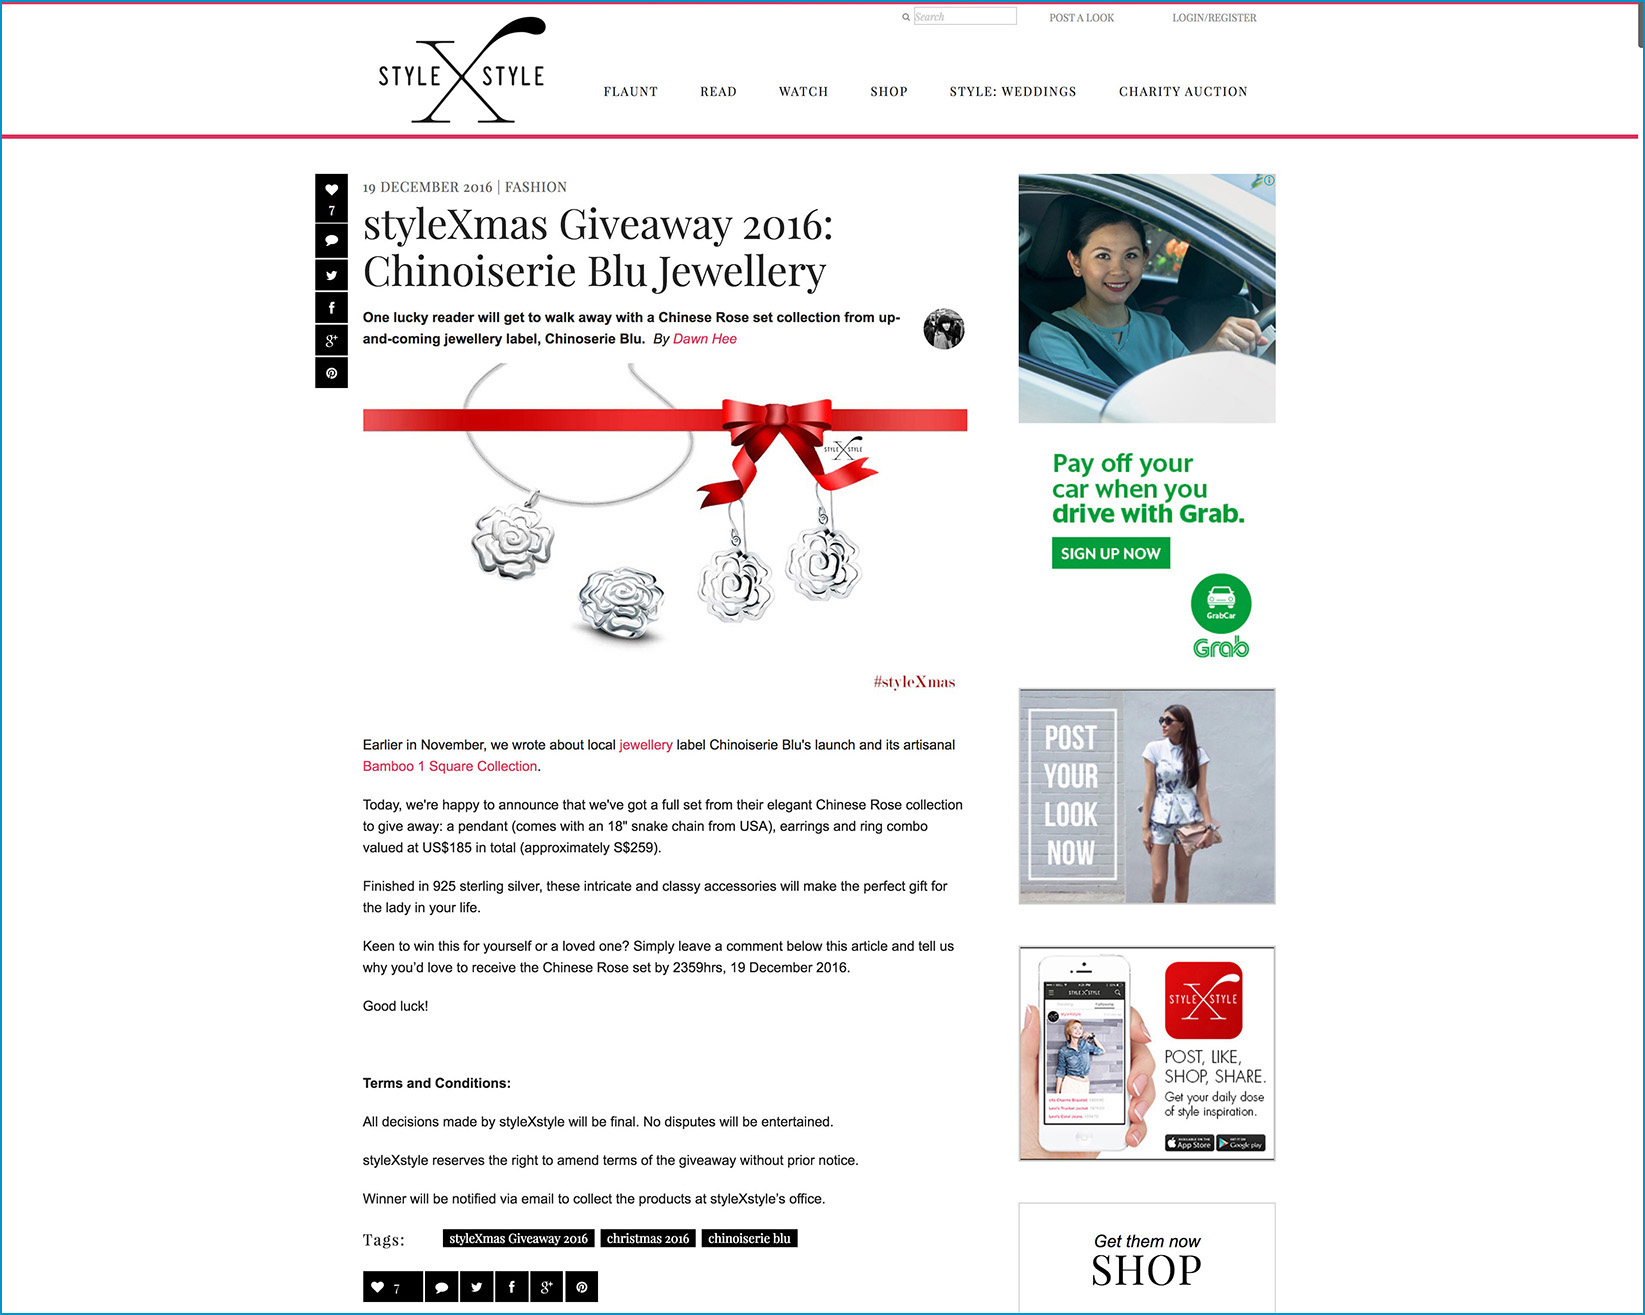 CBLU styleXstyle.com Chinese Rose 12D Christmas Giveaway 2016.12.19